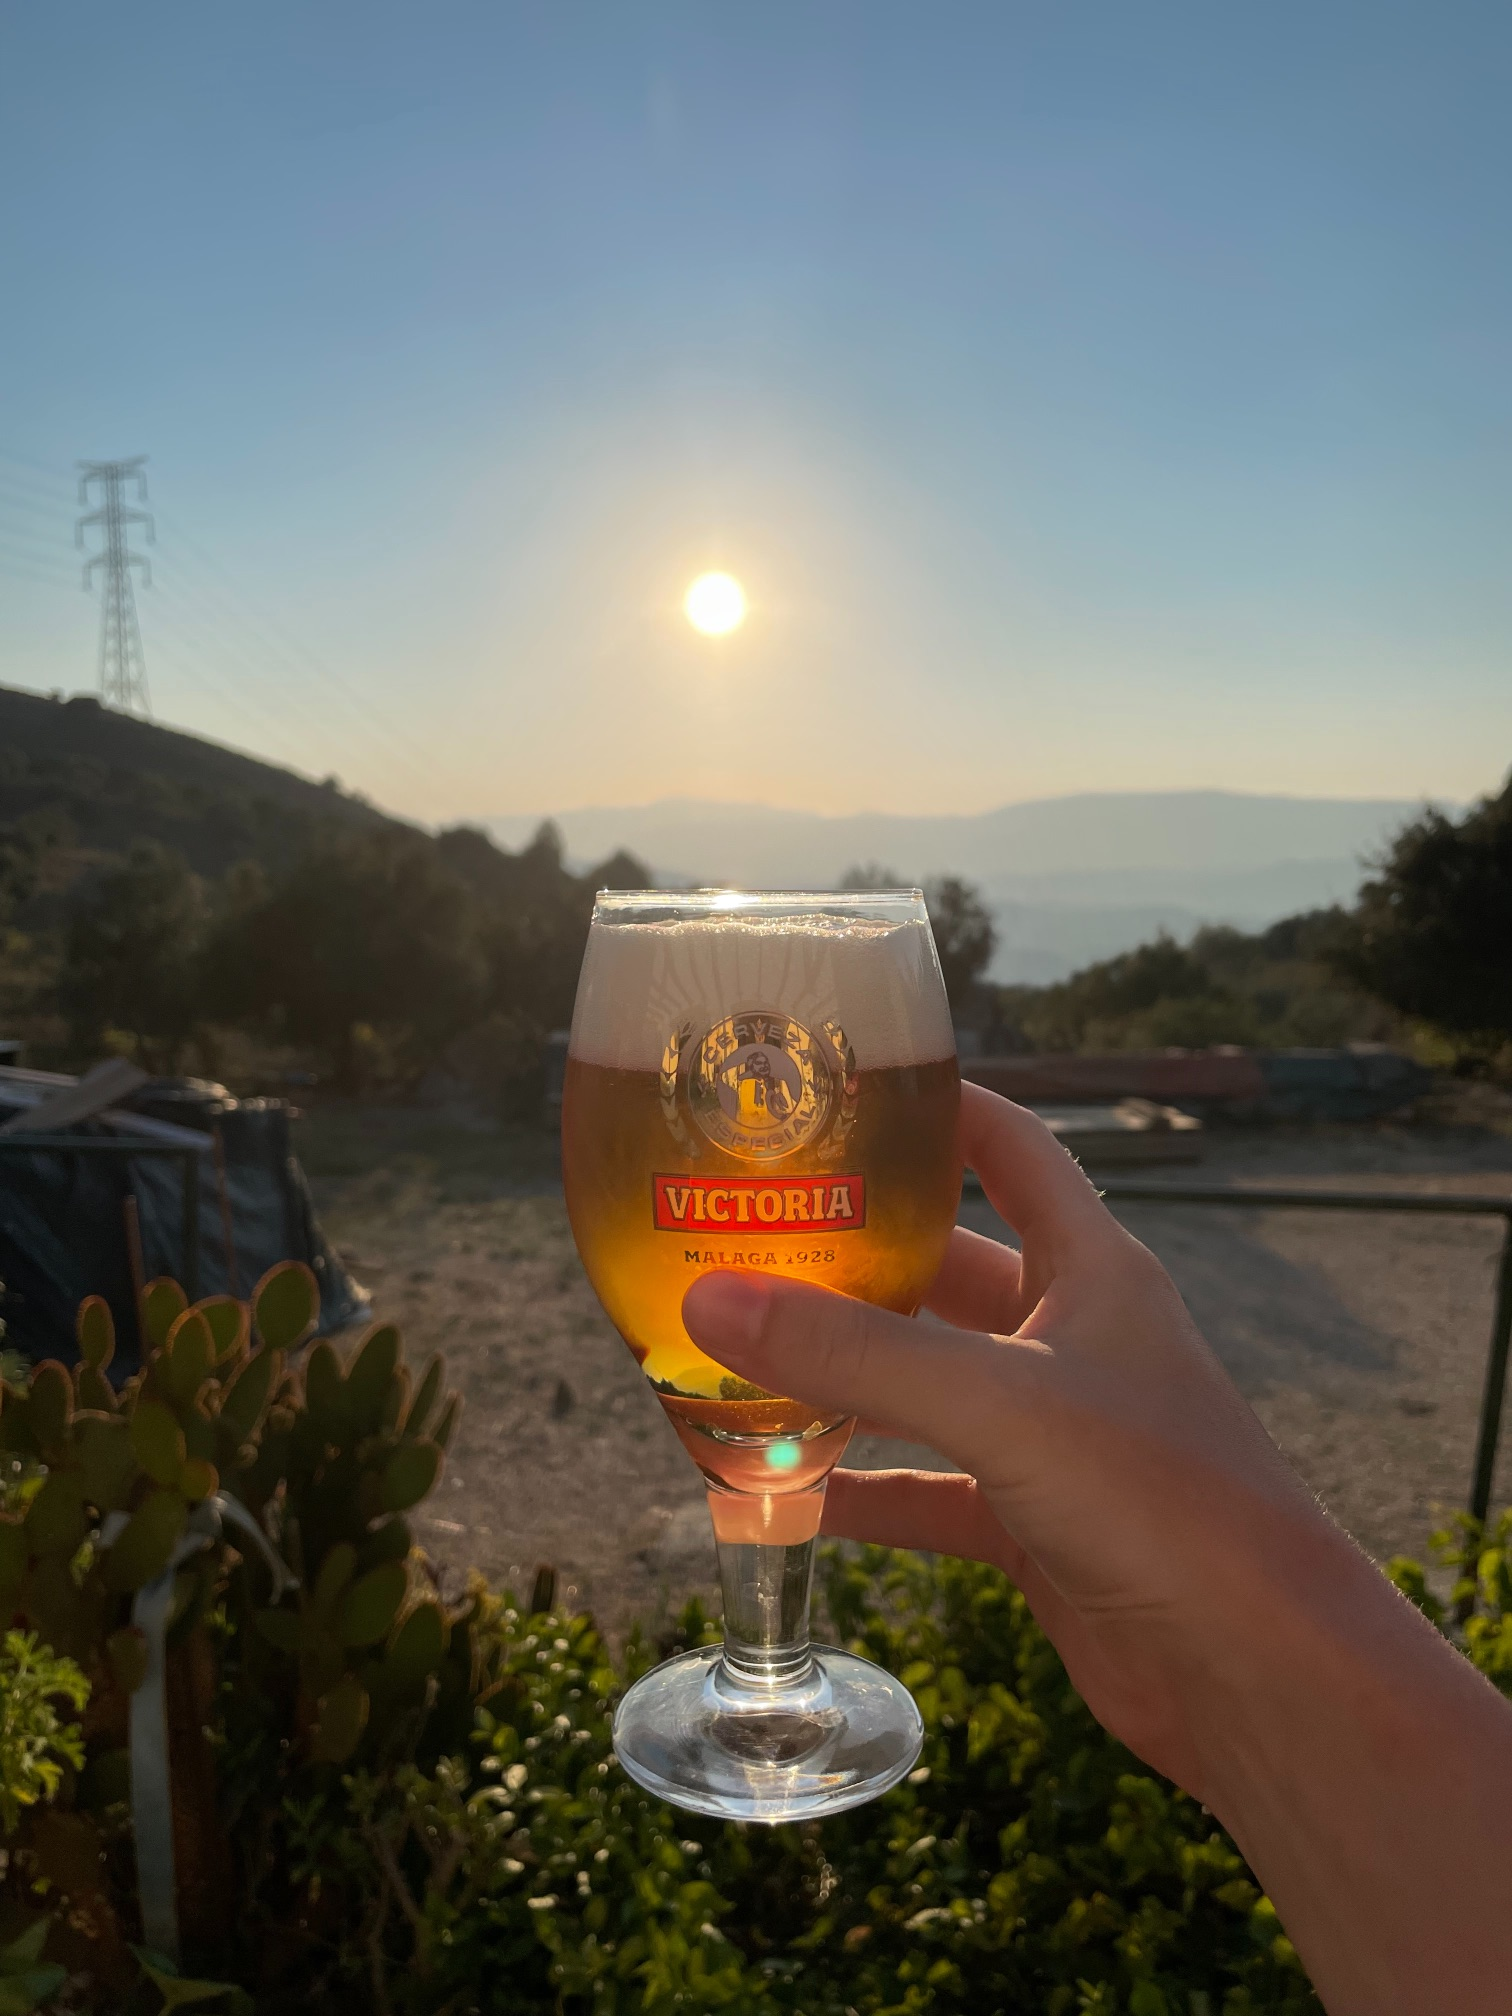 Victoria Malaga beer during the sunset in andalusia